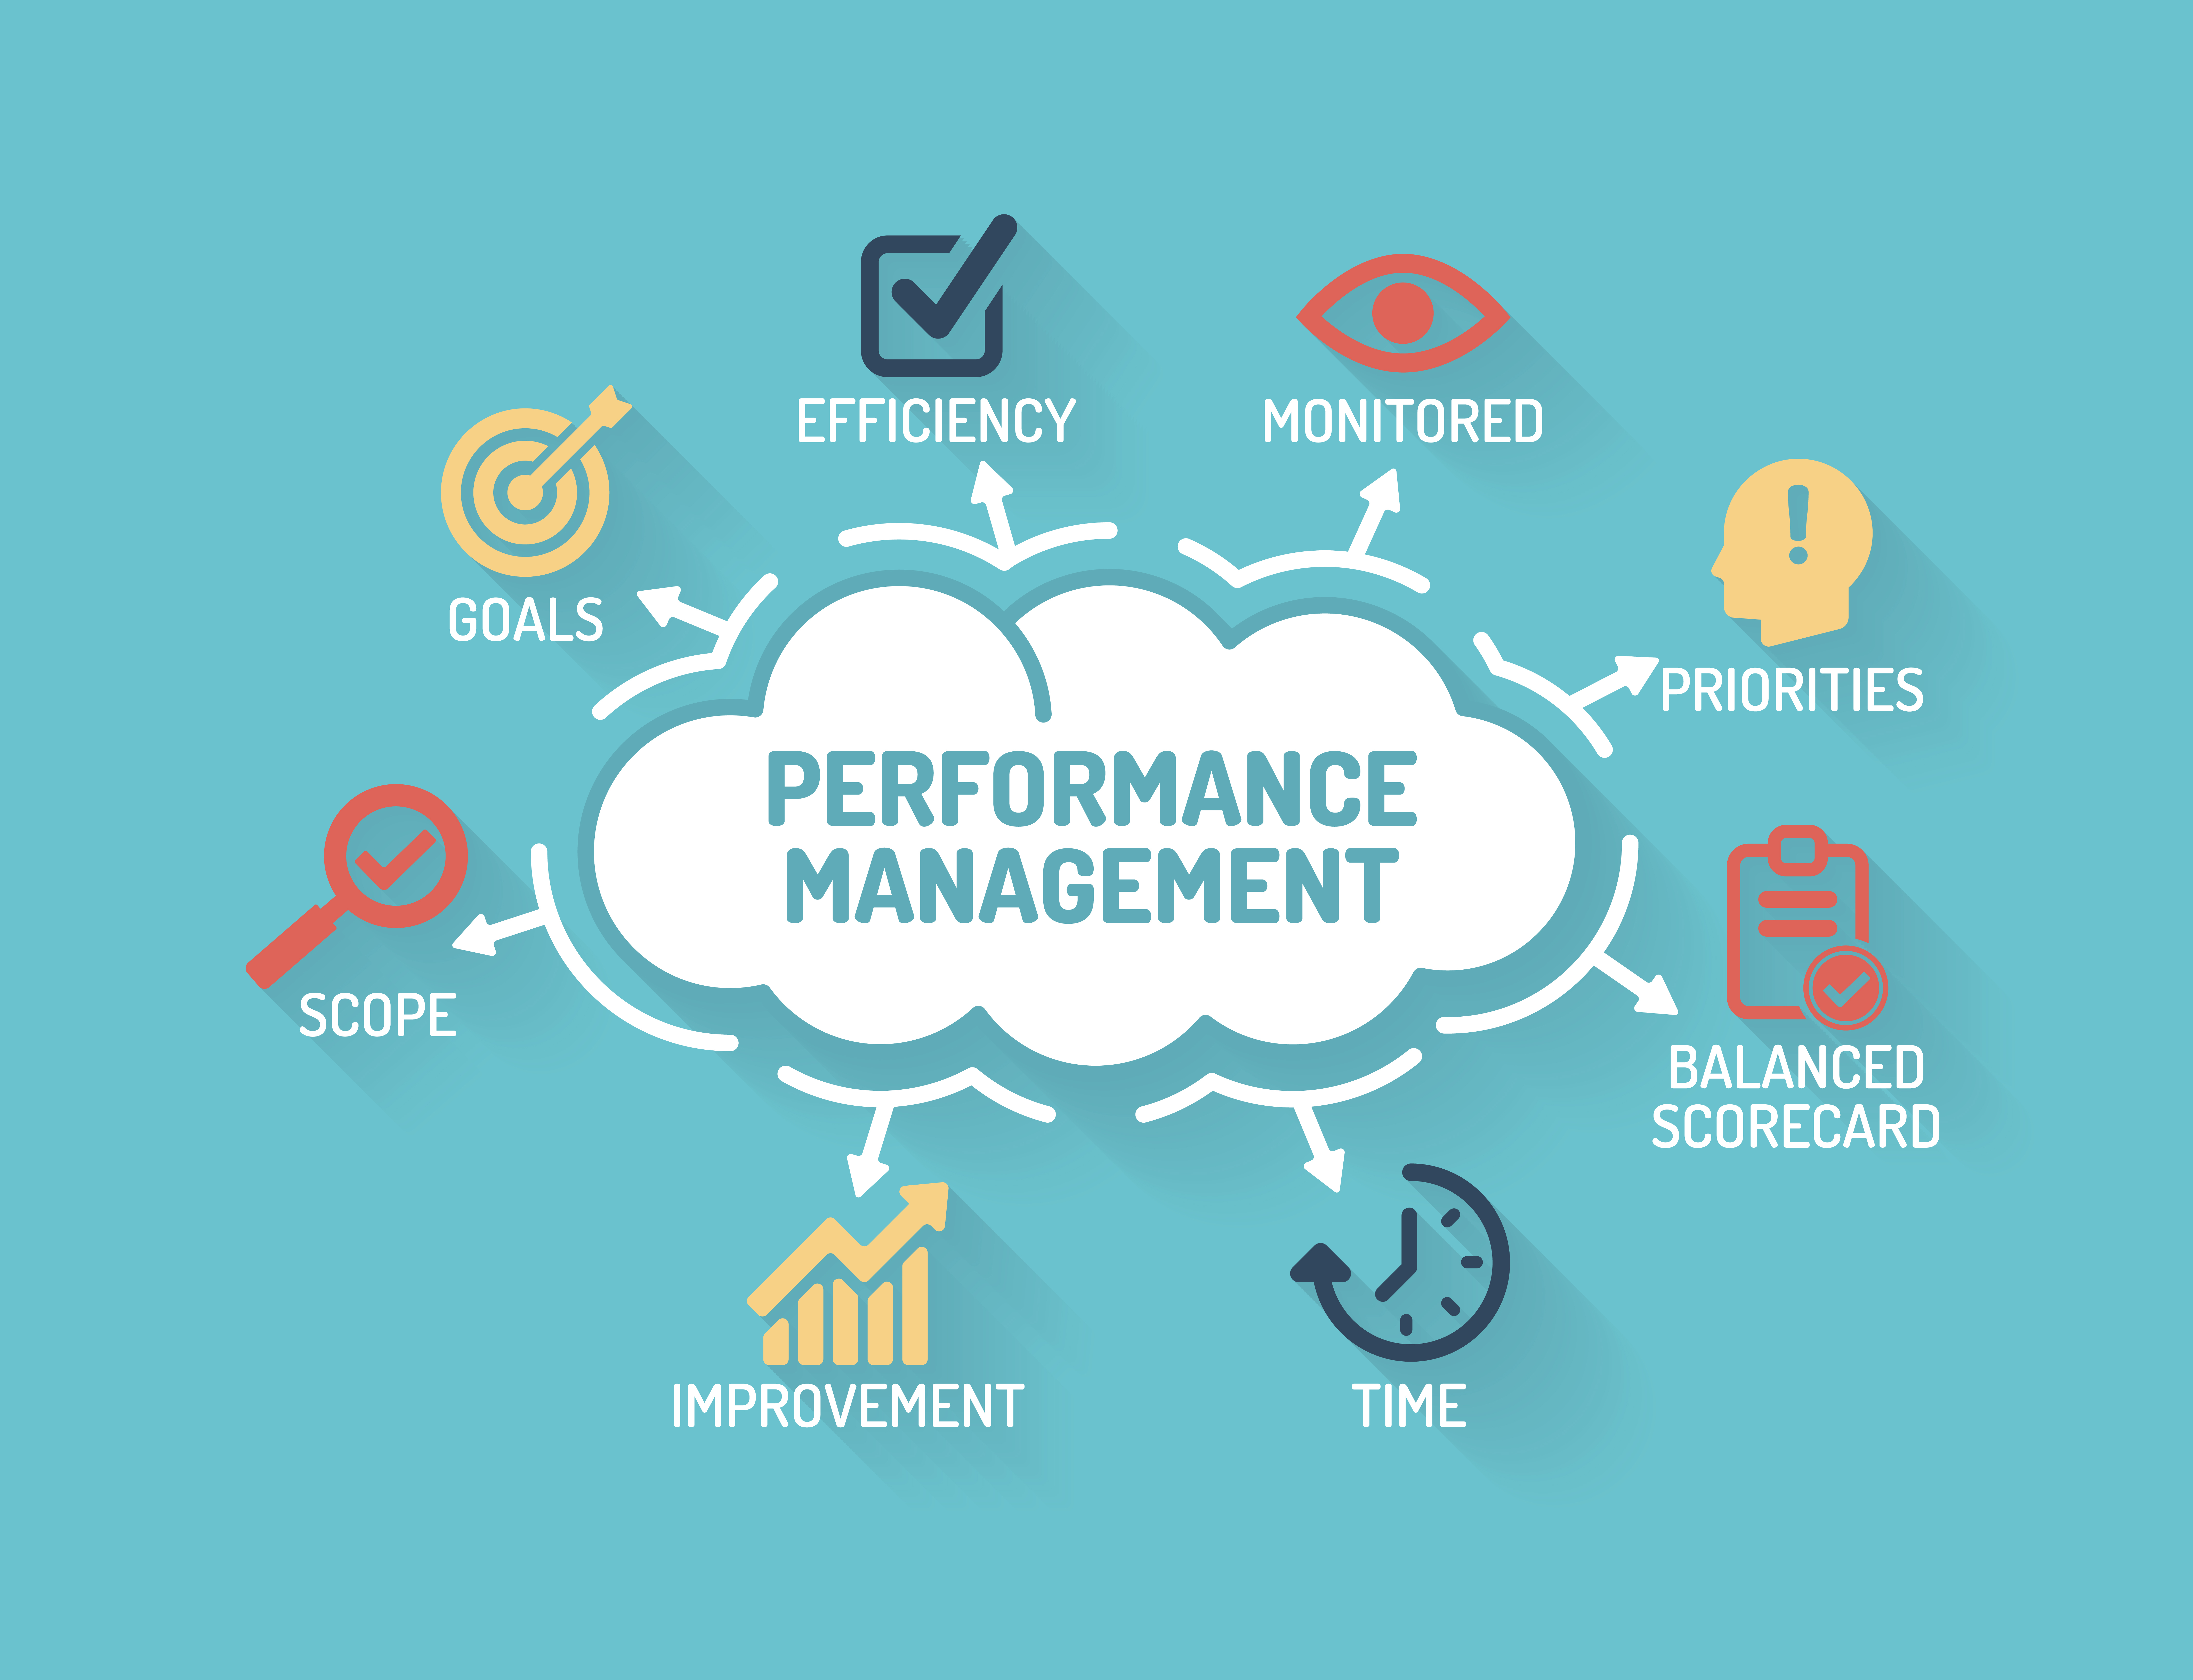 performance management, measuring results